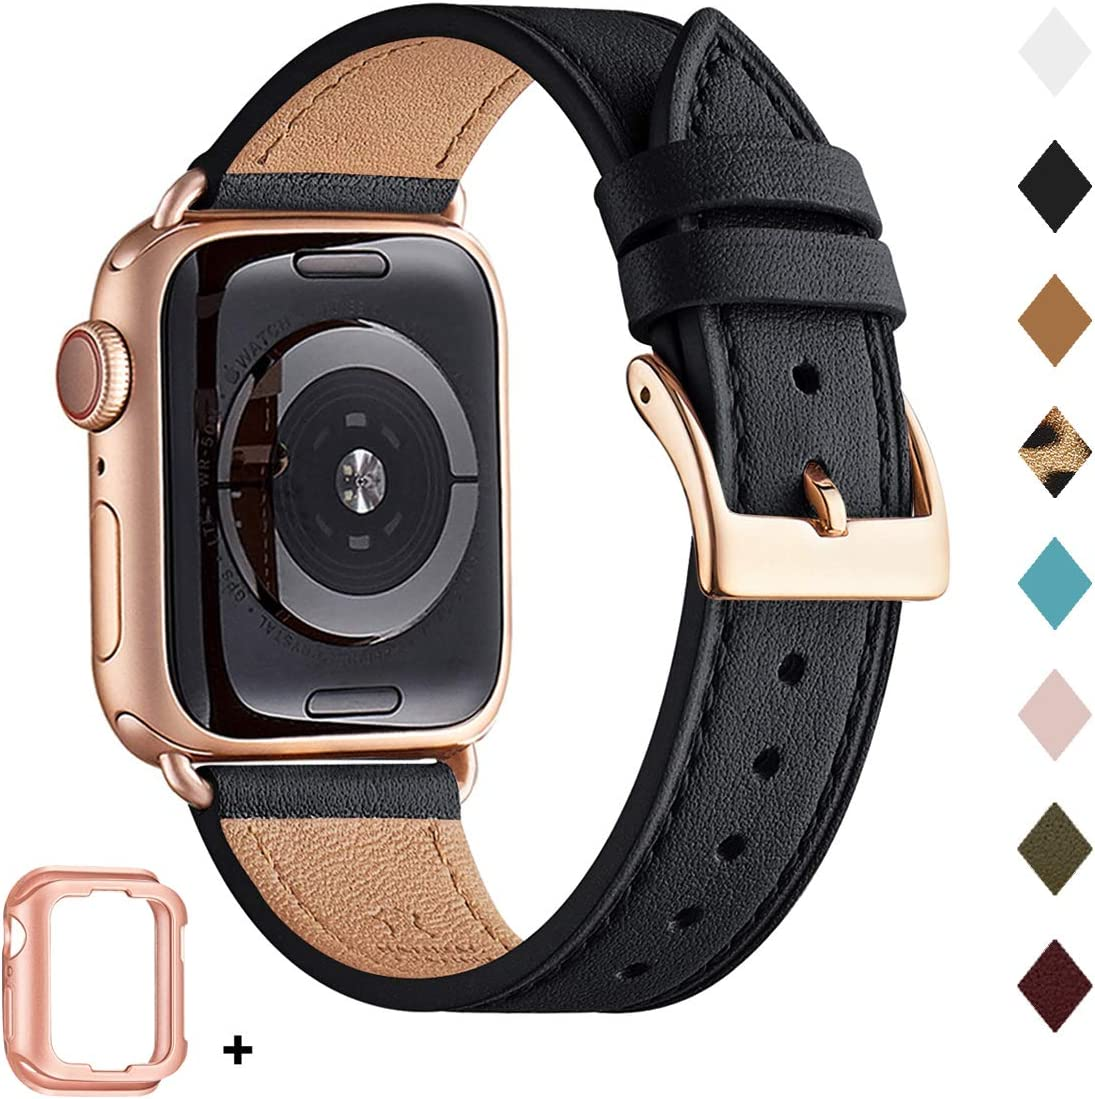 Bestig Band Compatible for Apple Watch 38mm 40mm 42mm 44mm, Genuine Leather Replacement Strap for iWatch Series 5/4/3/2/1, Sports & Edition (Black Band+Rose Gold Adapter, 38mm 40mm)